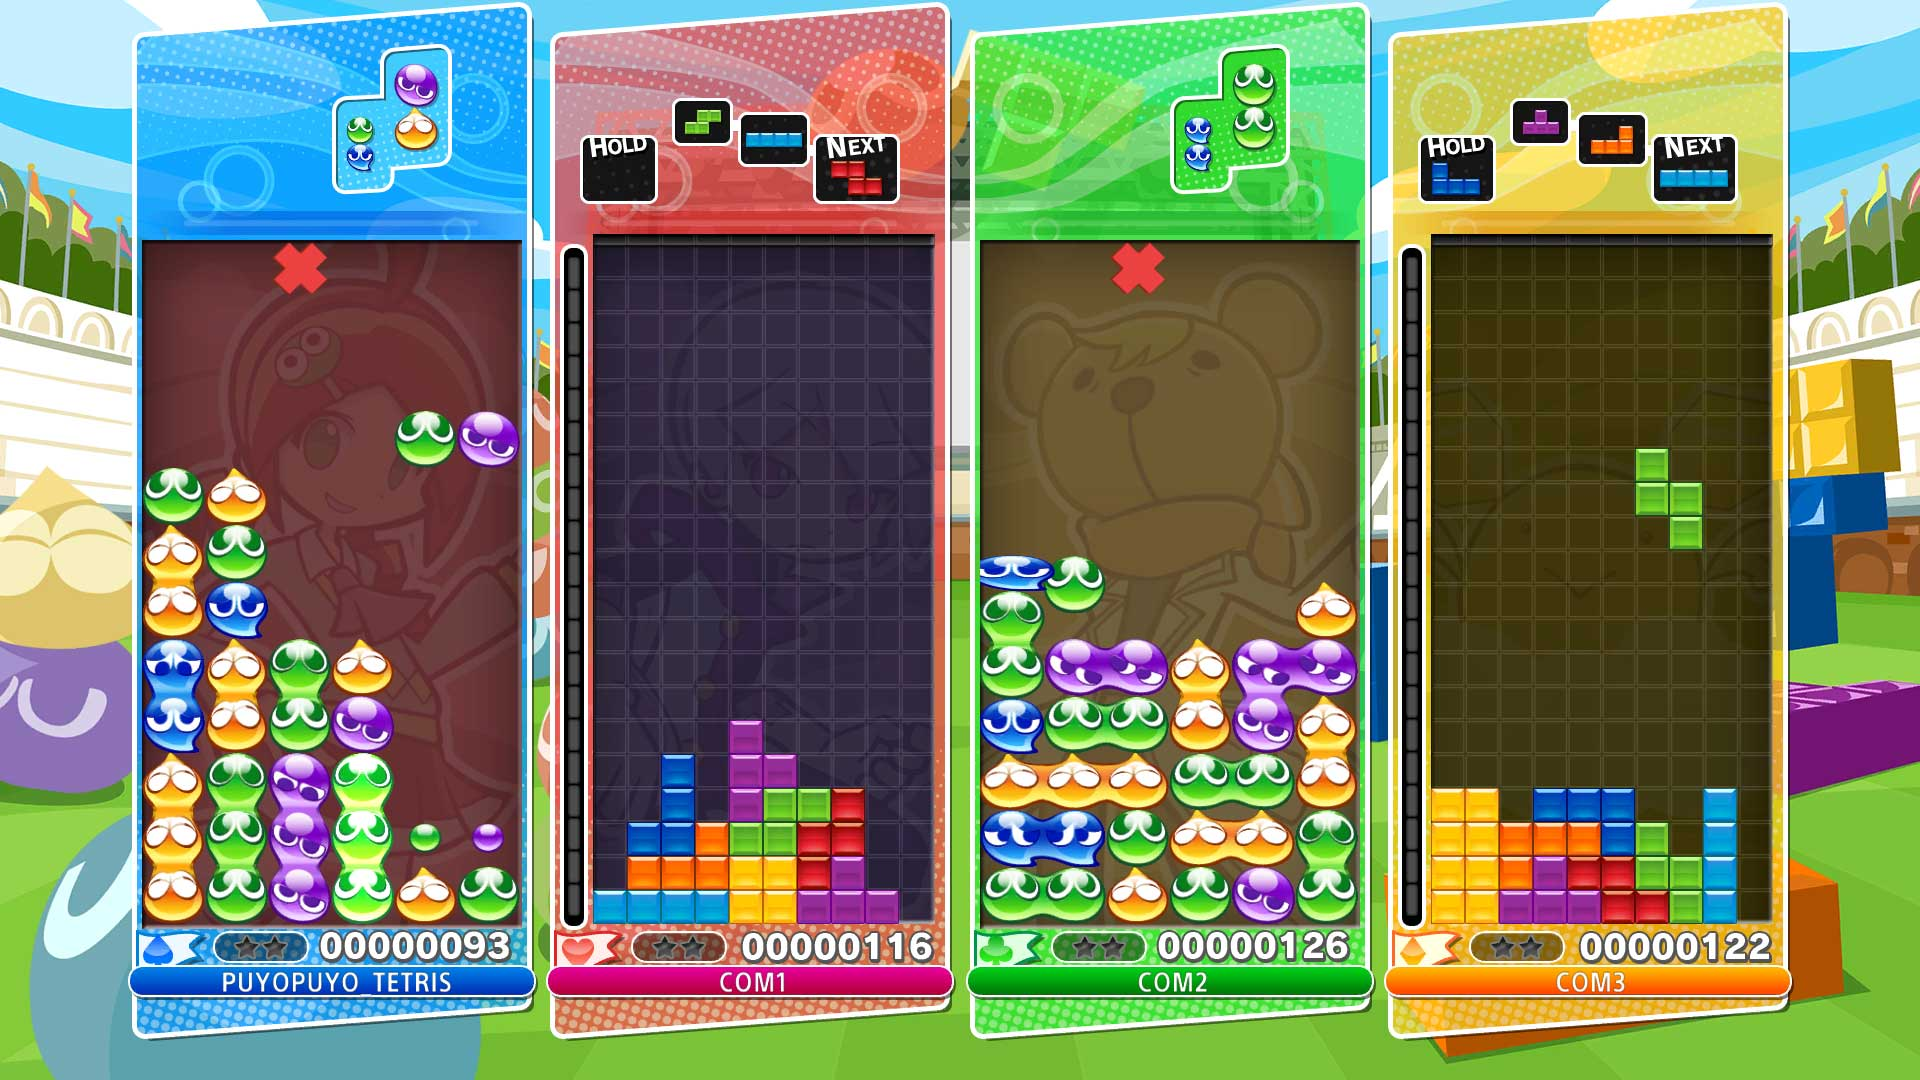 images How to Play Tetris